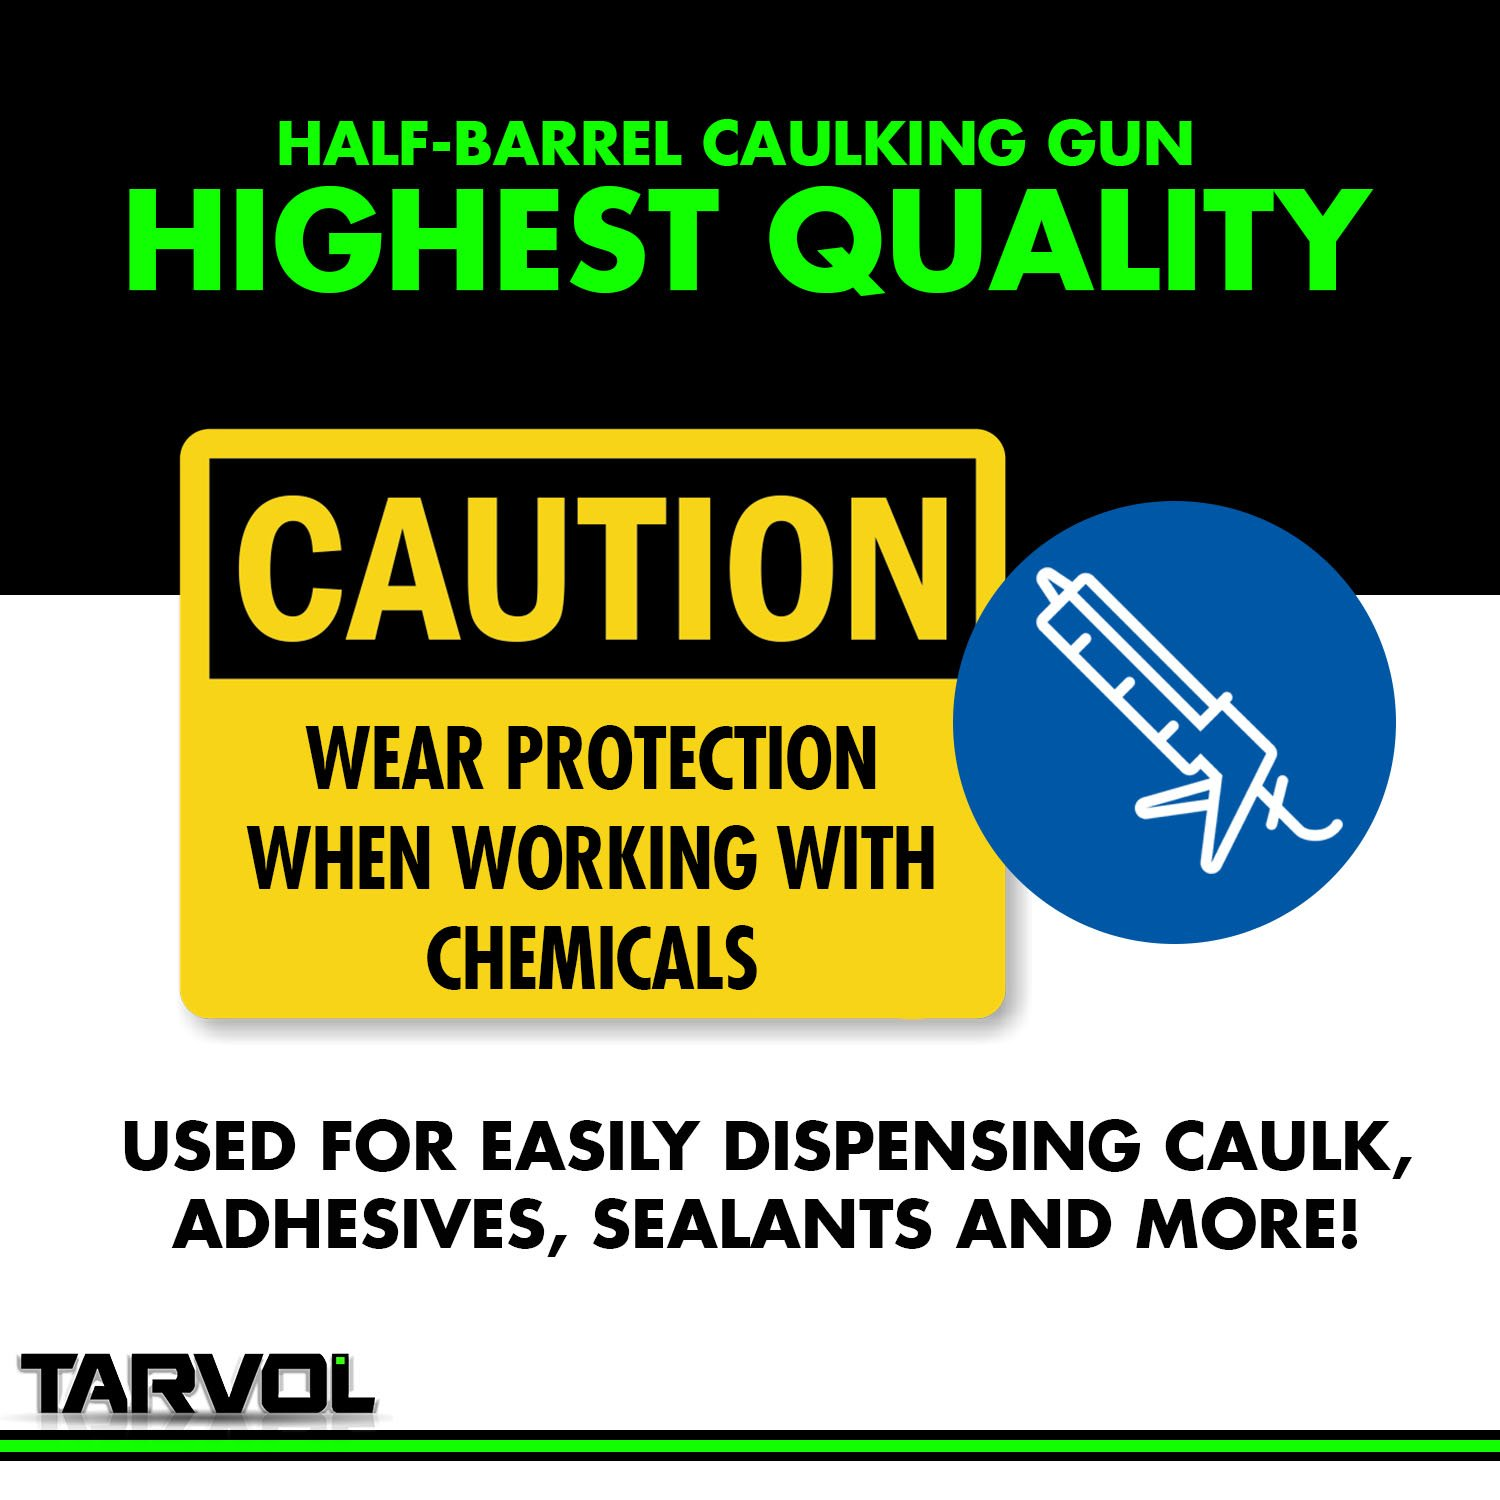 3 in 1 Caulking Gun (HEAVY DUTY CHROME PLATED) Fits Standard Size 10oz Caulk - Refillable 3 in 1 Design Includes Built in Cutter and Puncher Tool - Perfect for Industrial & Home Use! by Tarvol (Image #6)